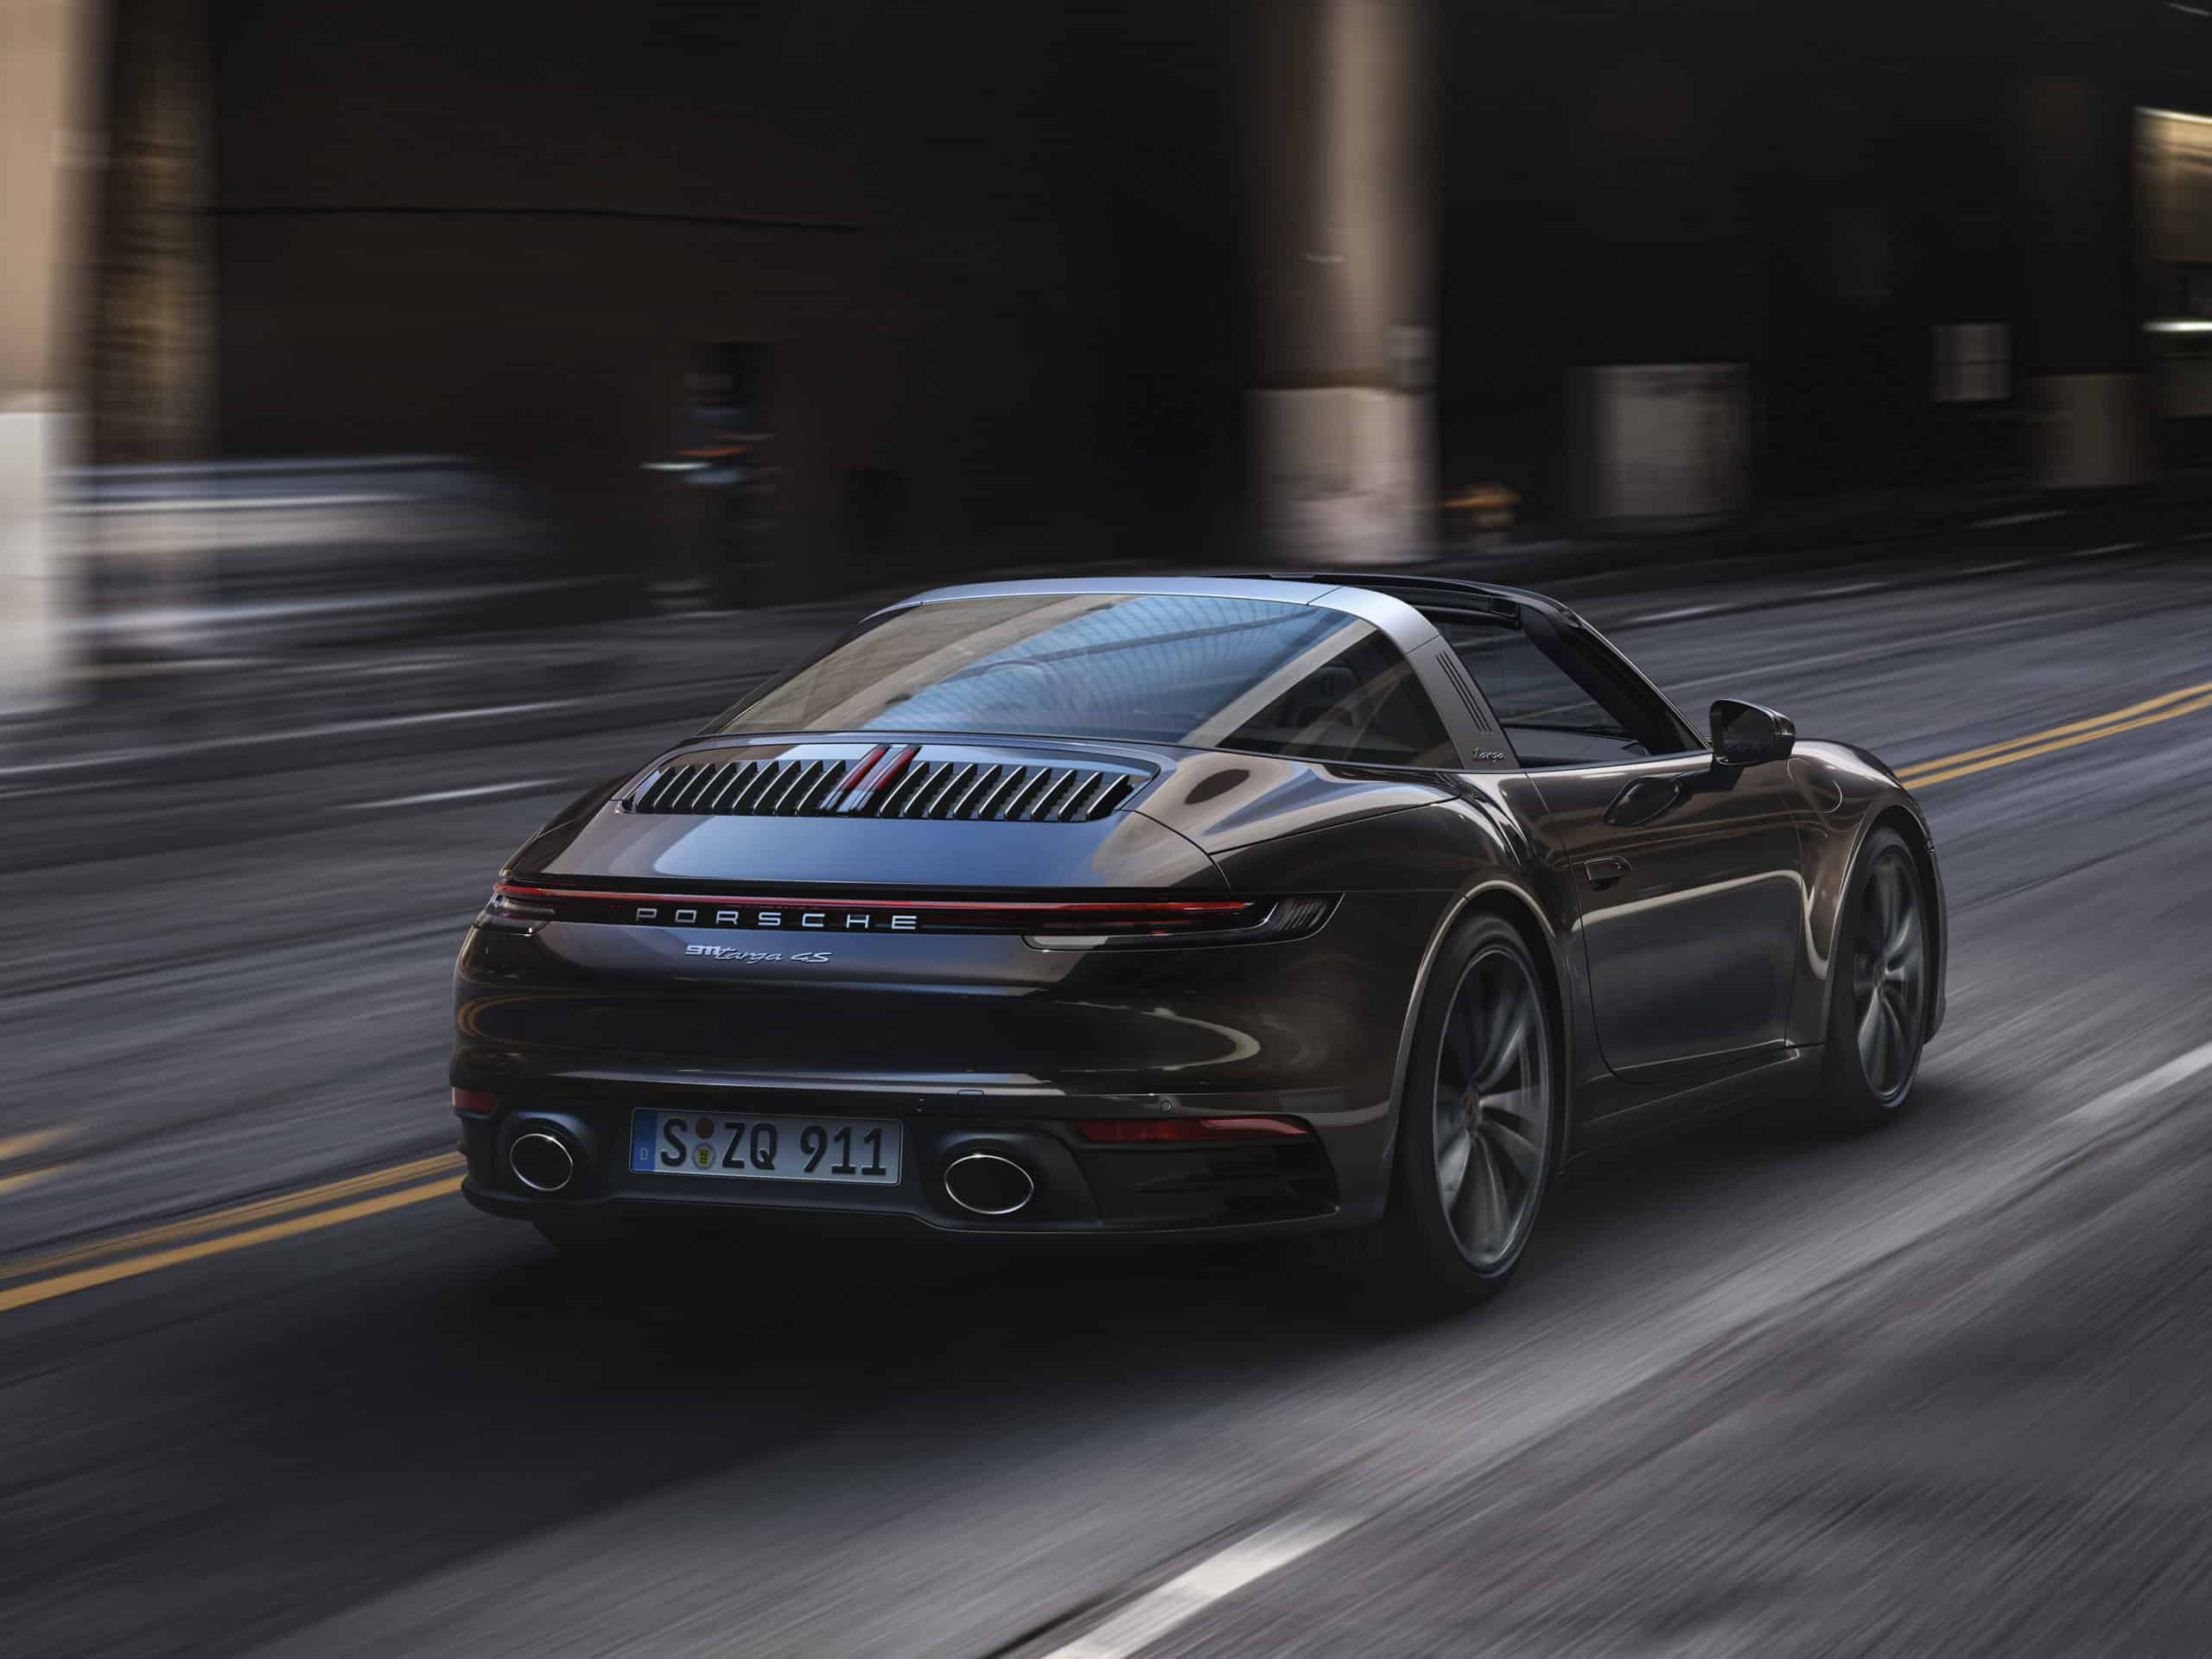 2021 Porsche Targa 4S black rear view moving